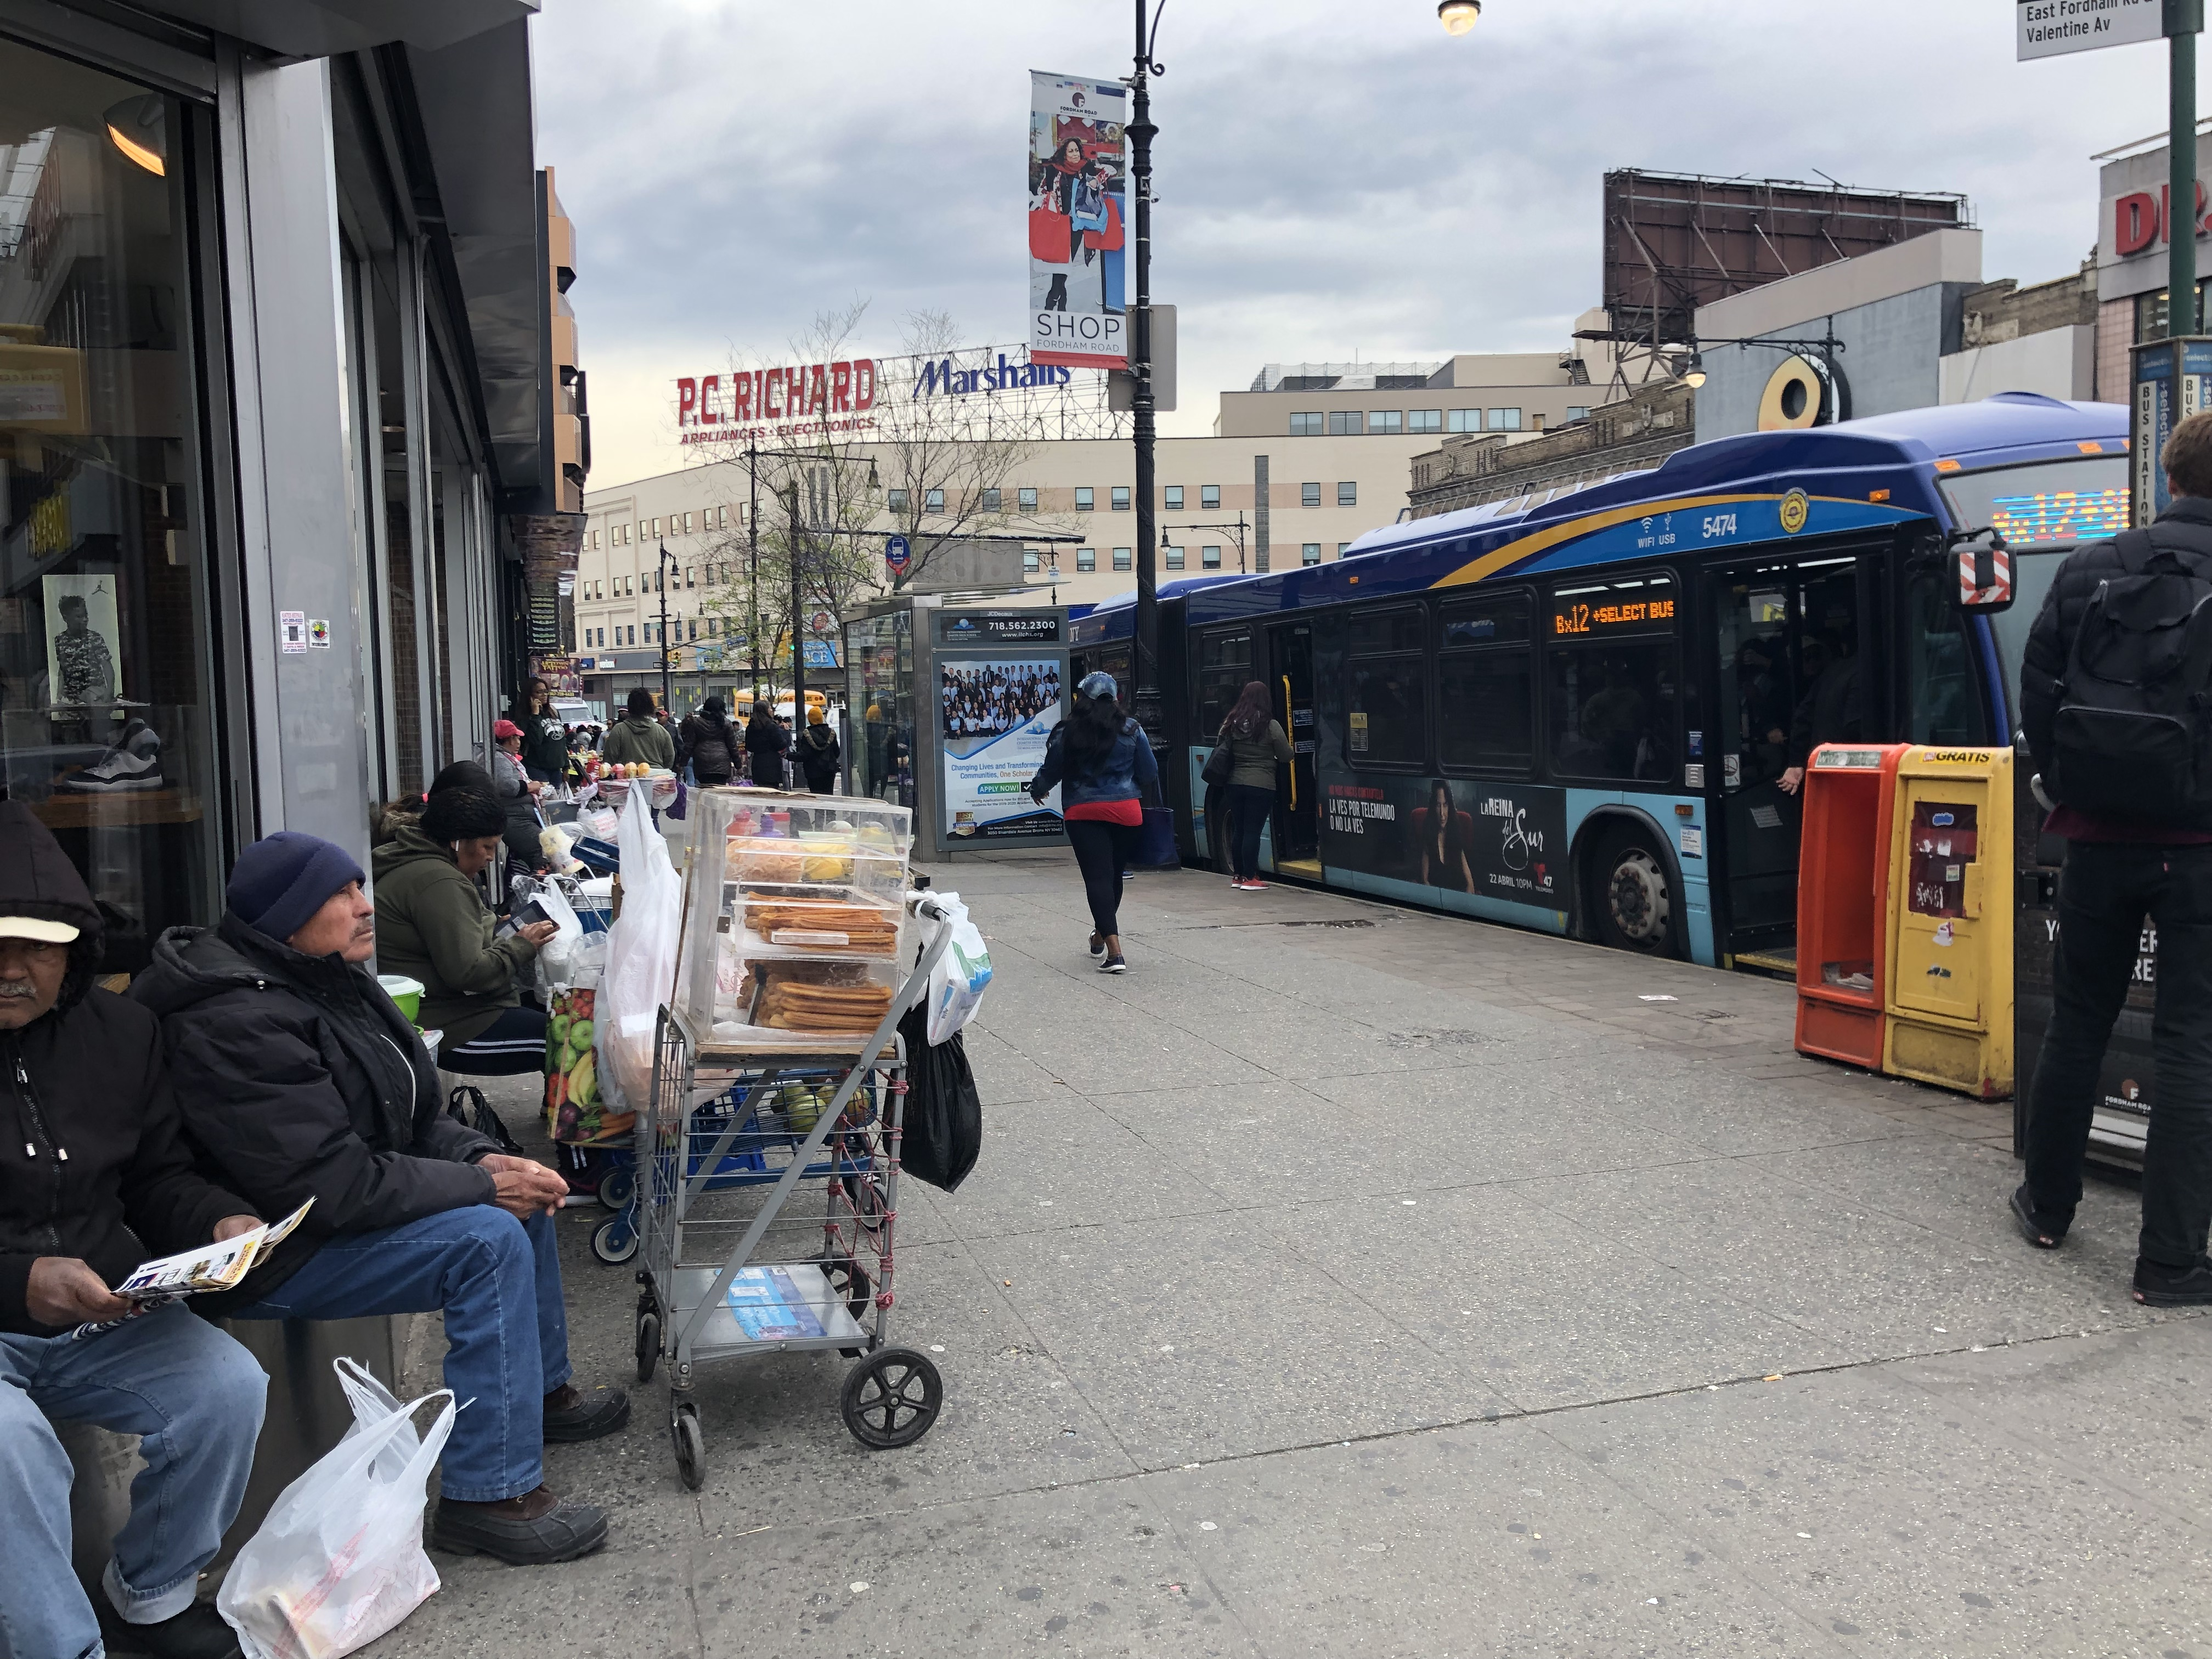 More than a Bus Stop: Lessons from New York's Busiest Lines Q Bus Map on q44 bus map, q17 bus map, new york city bus map, queens bus map, q25 bus map, q70 bus route map, brooklyn bus map, q55 bus map, q64 bus map, q76 bus map, q112 bus map, mta bus map, nyc bus map, q46 bus map, q20 bus map, q84 bus map, q59 bus route map, q83 bus map, q37 bus map, q20a bus map,